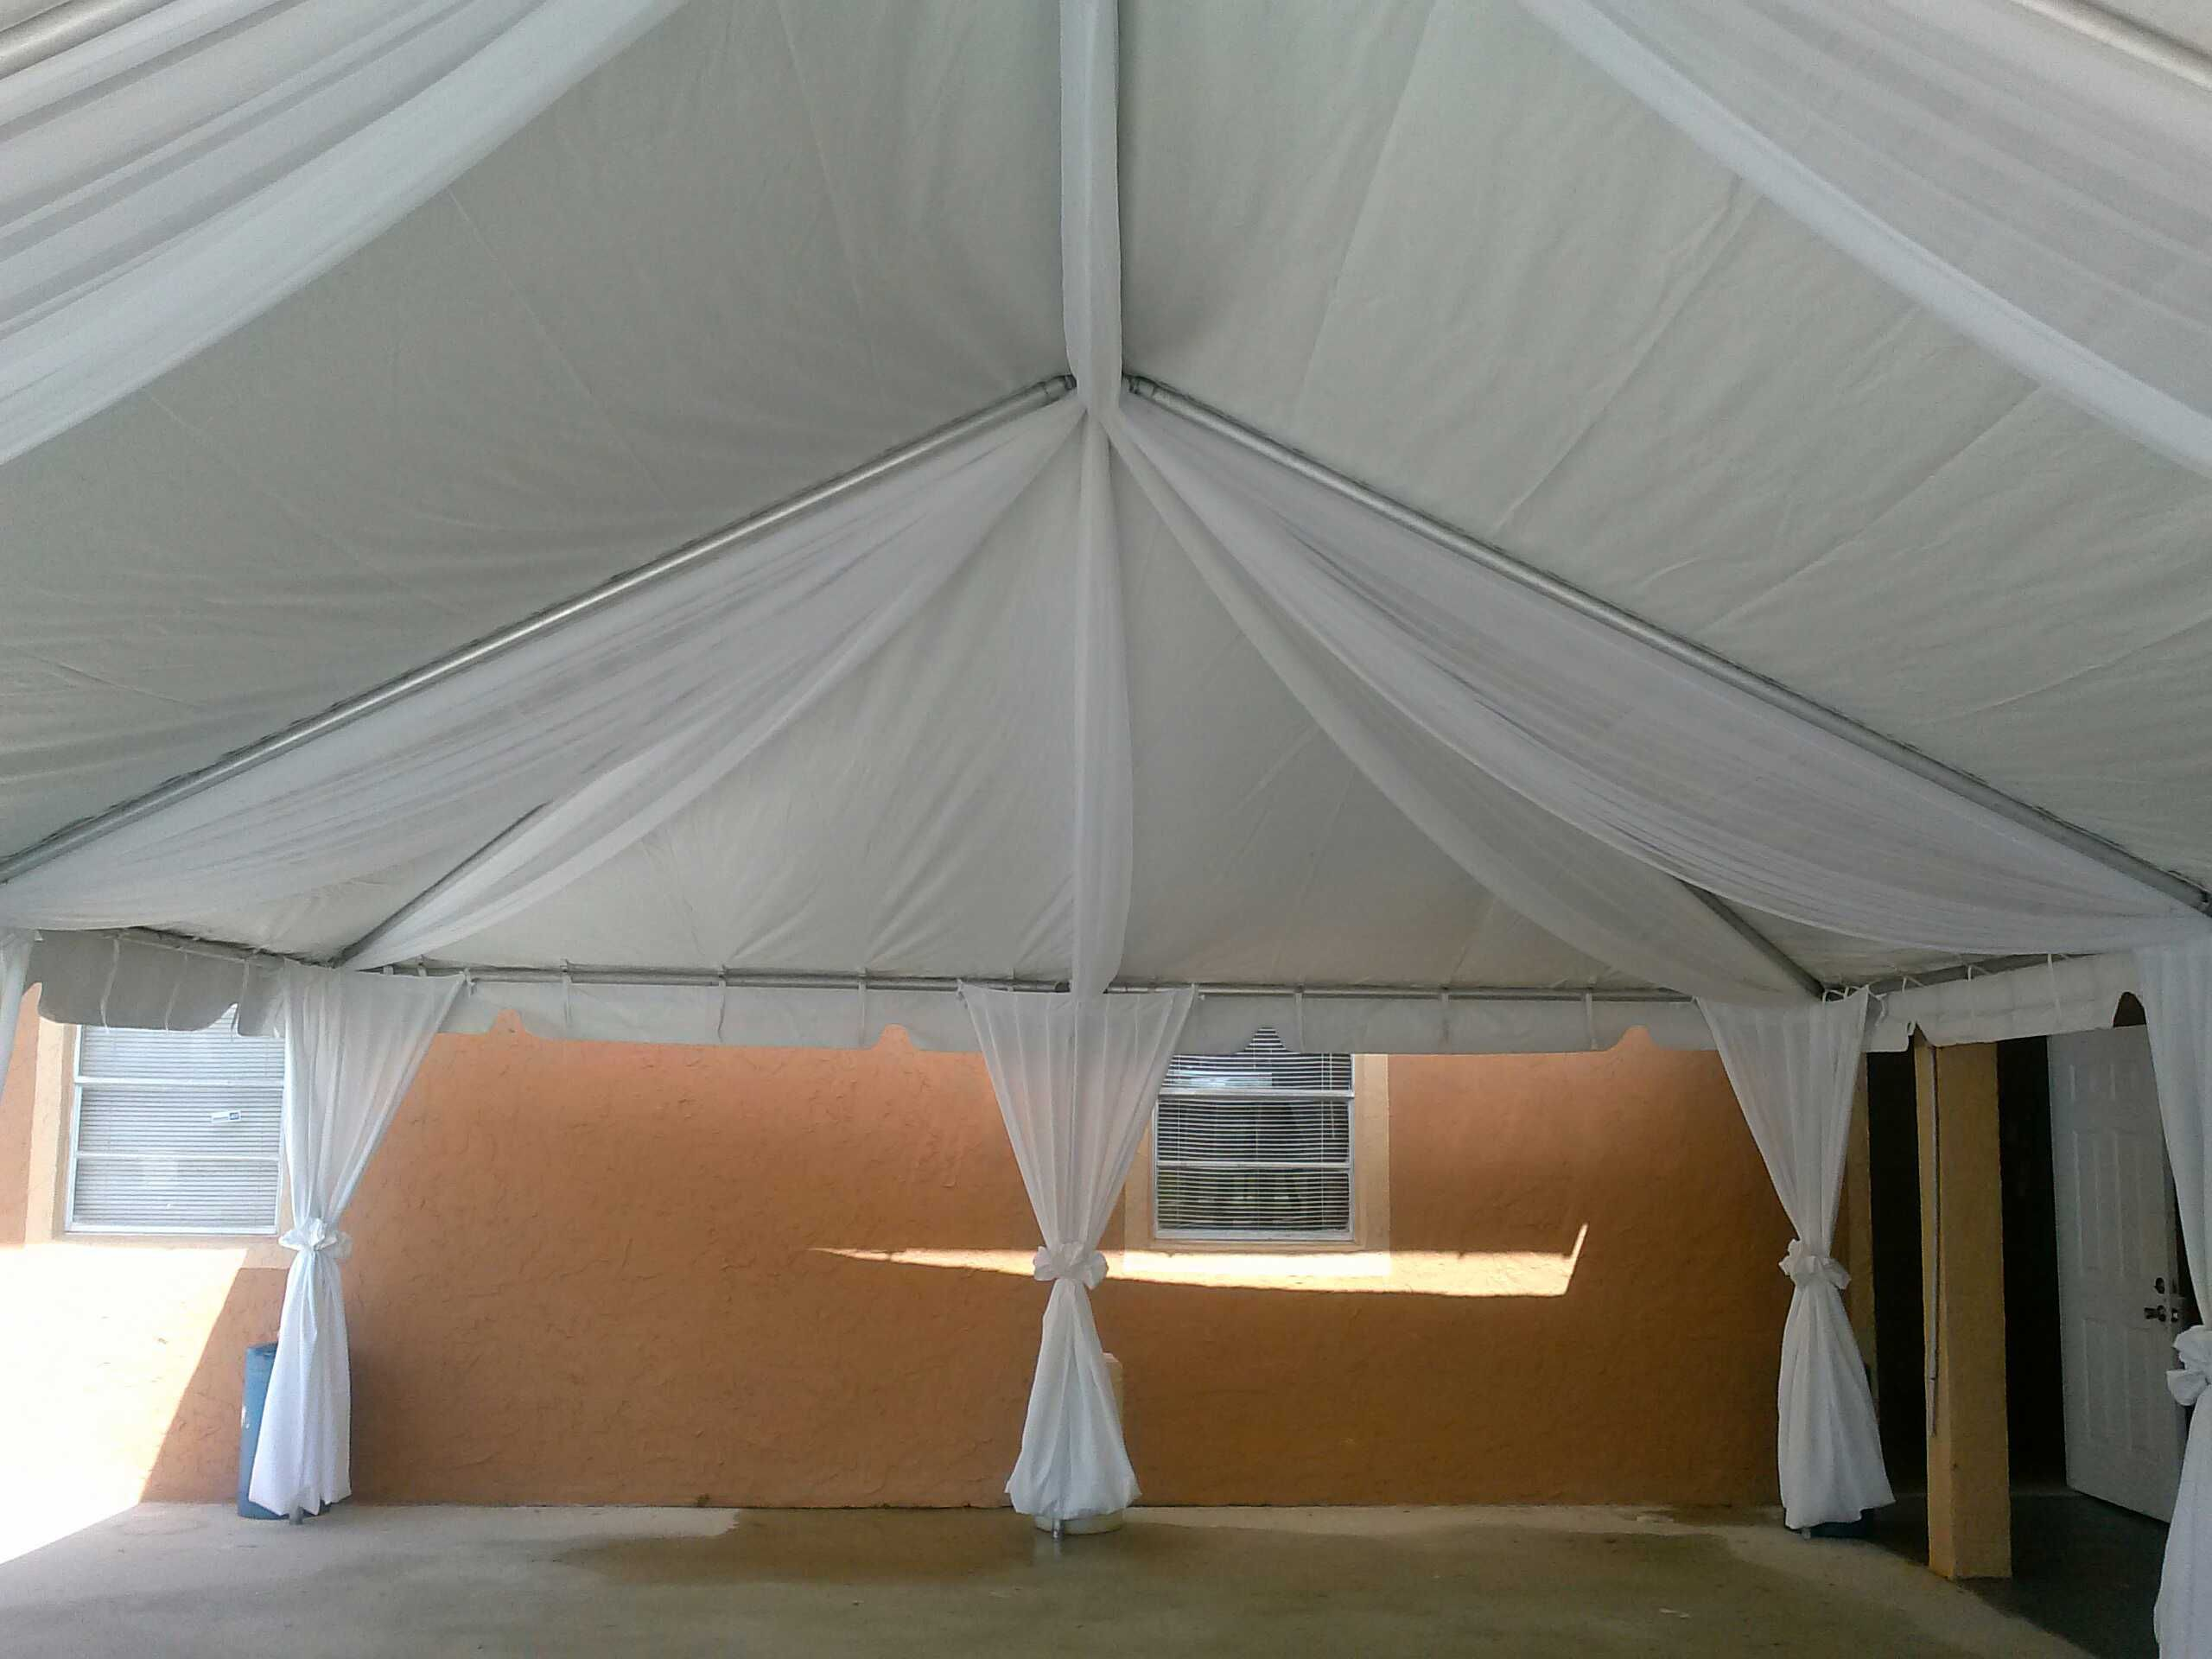 A 20 X 30 Frame Tent With White Drapes